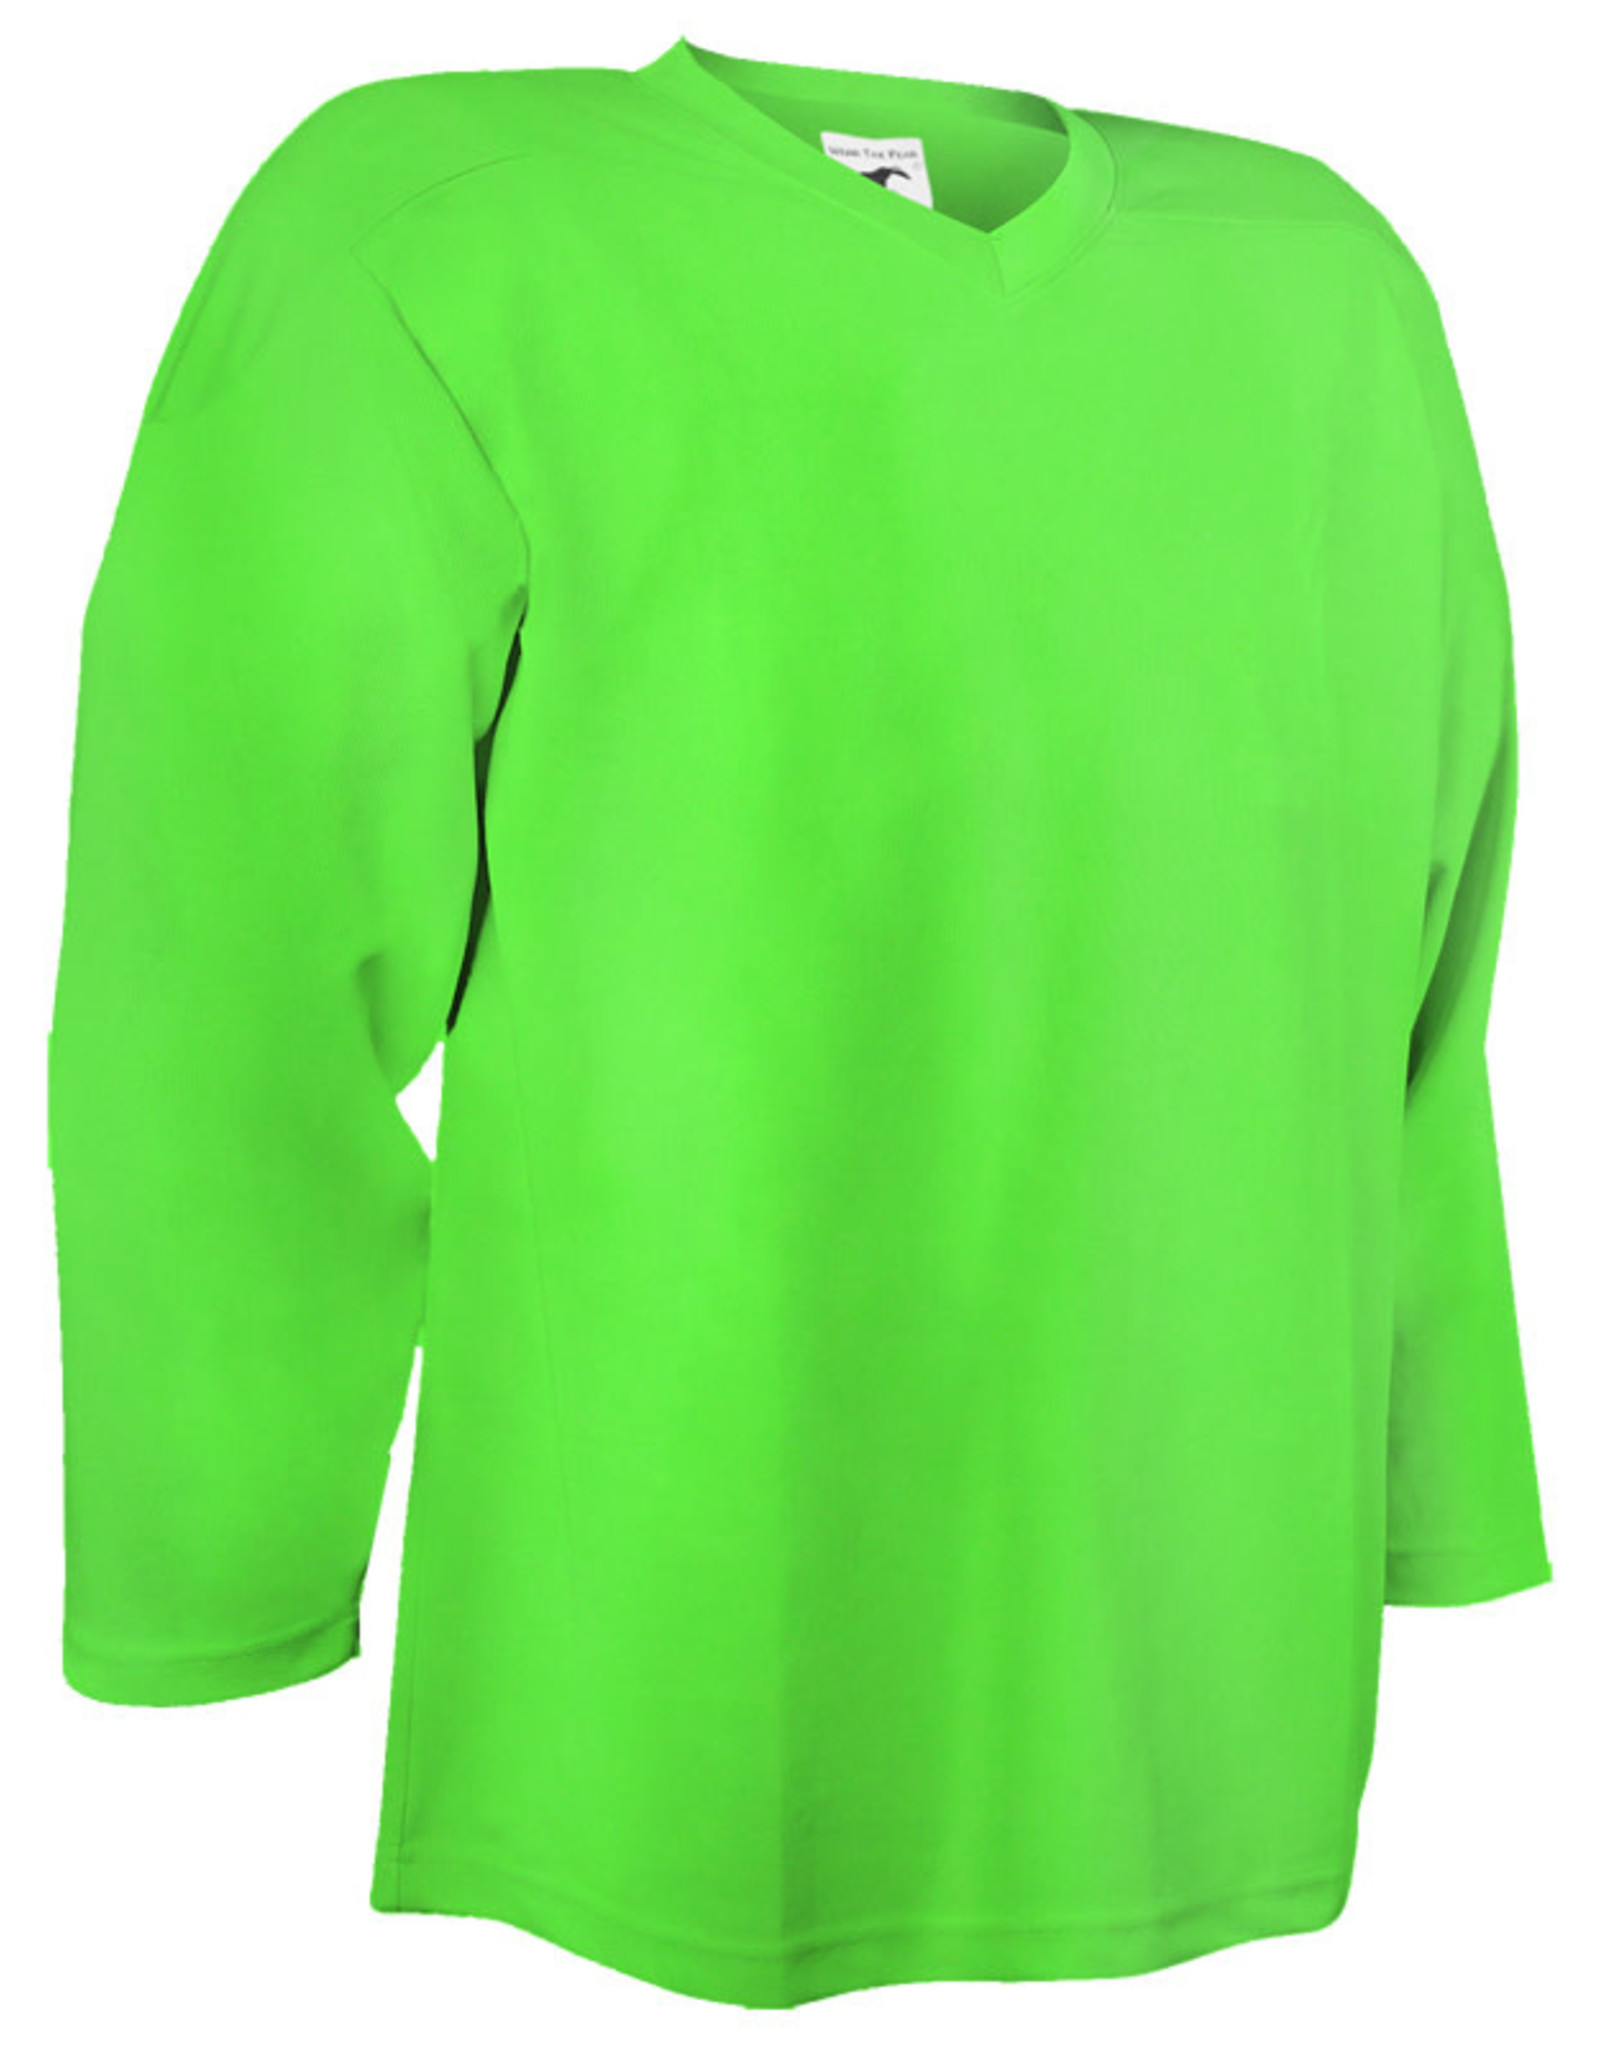 Pear Sox Pear Sox Air Mesh Practice Jersey (YOUTH NEON GREEN)